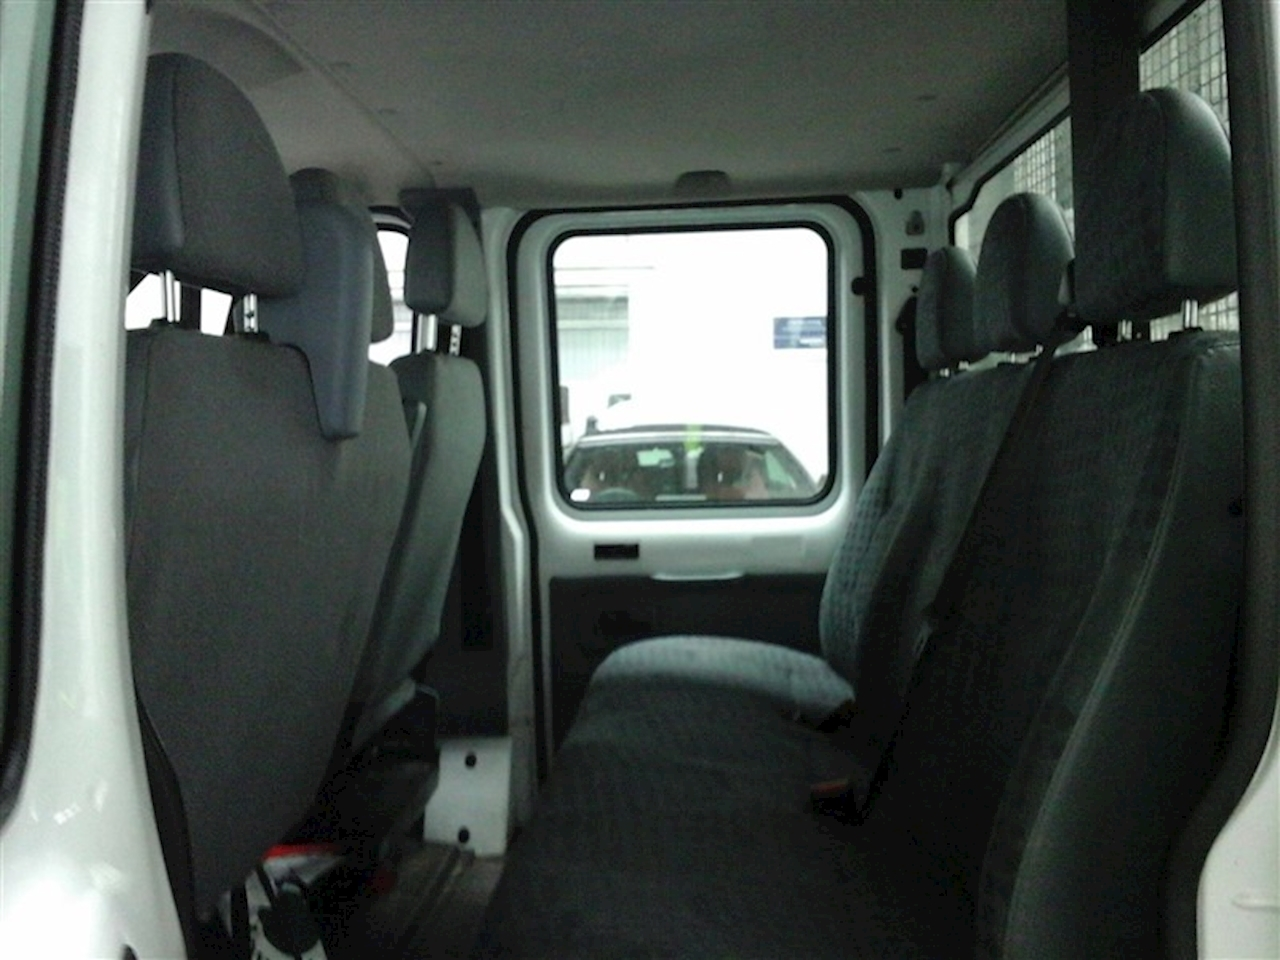 Ford Transit 350 2.2TDCi caged double cab tipper 2.2 Chassis Cab Manual Diesel